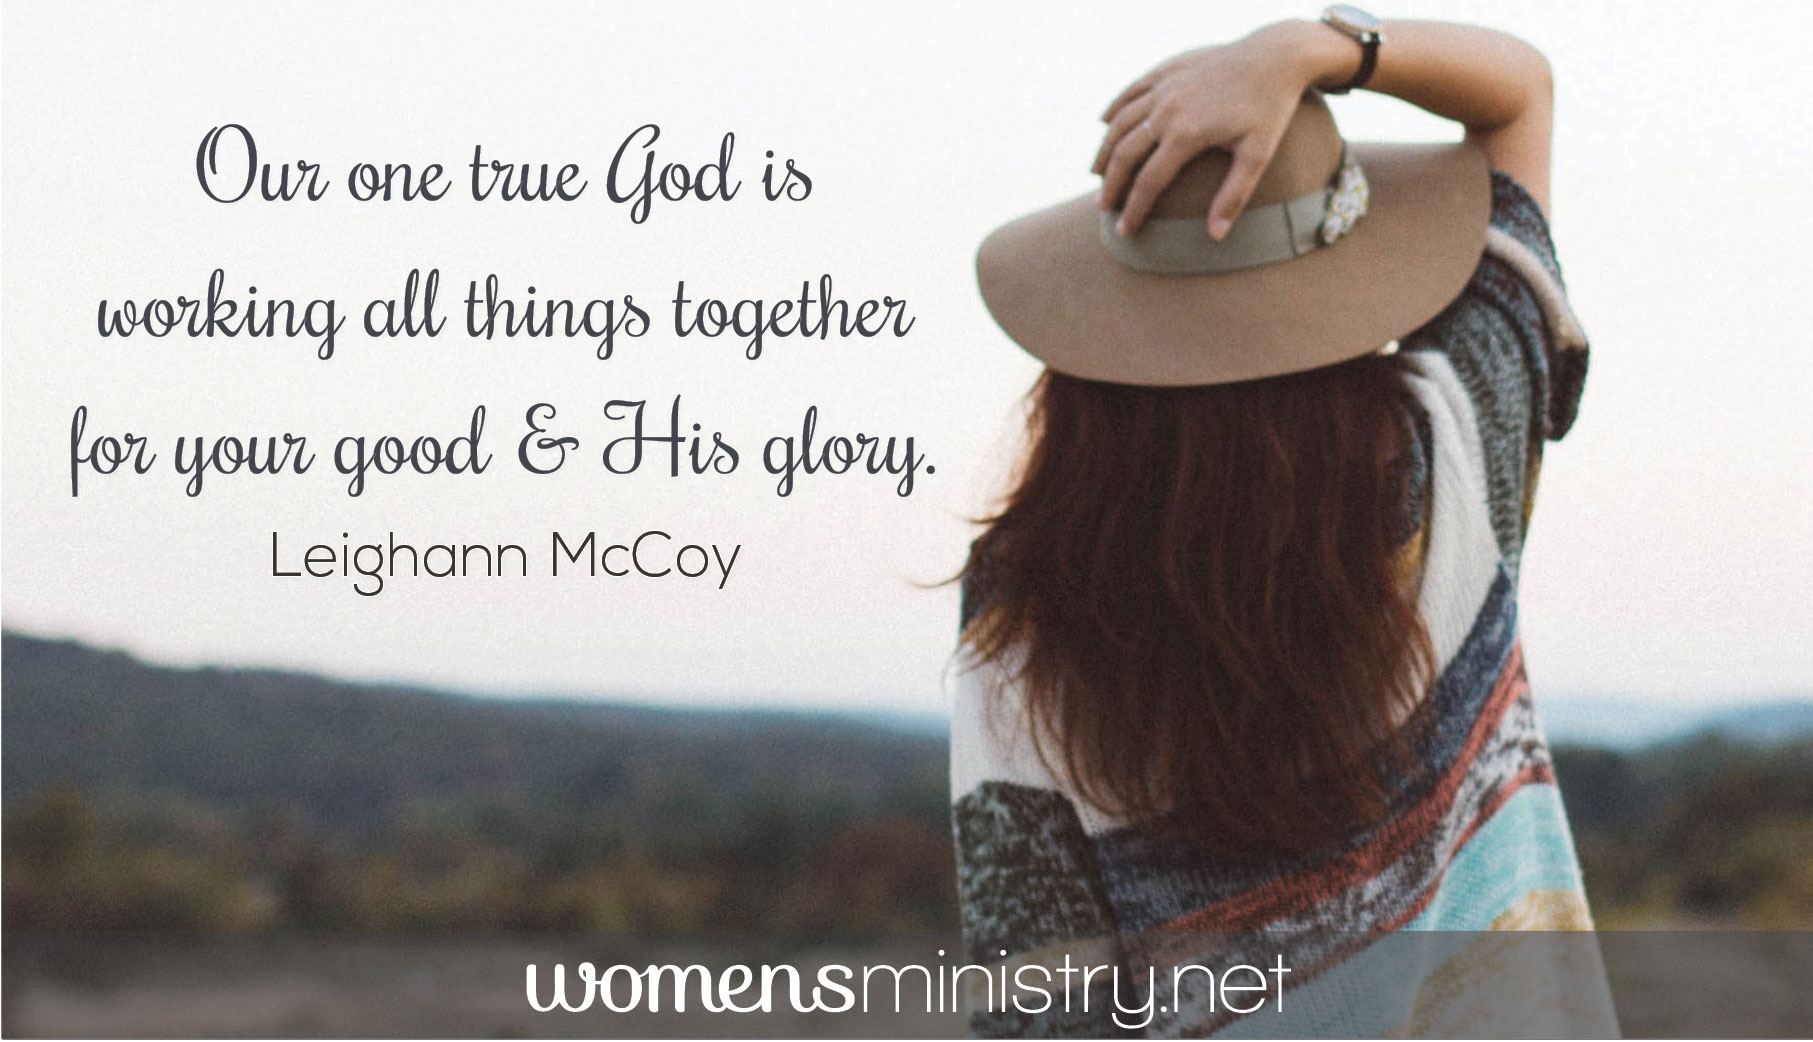 Leahann McCoy quote image